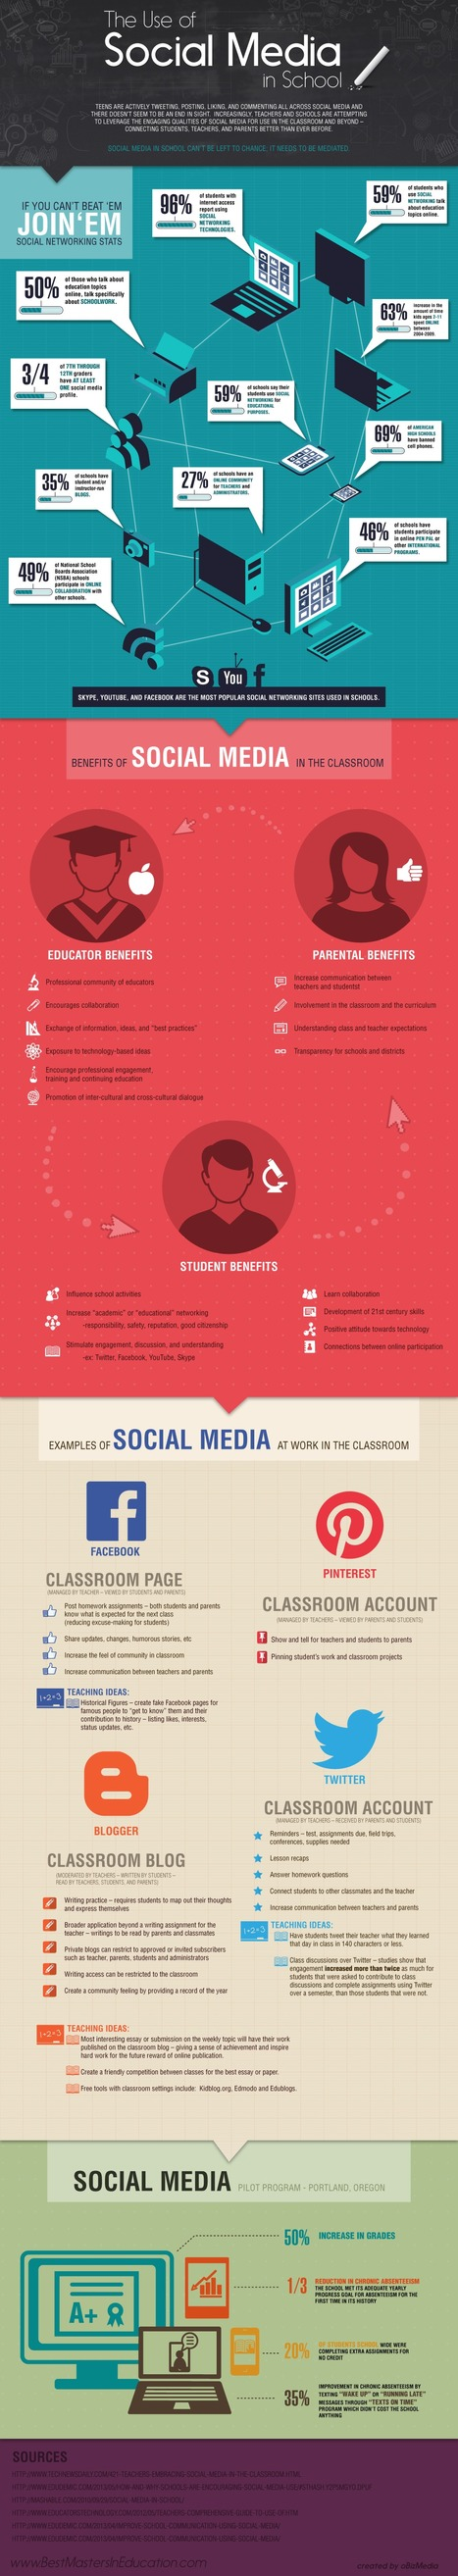 The Use of Social Media in Schools – an infographic | Social Media 4 Education | Scoop.it